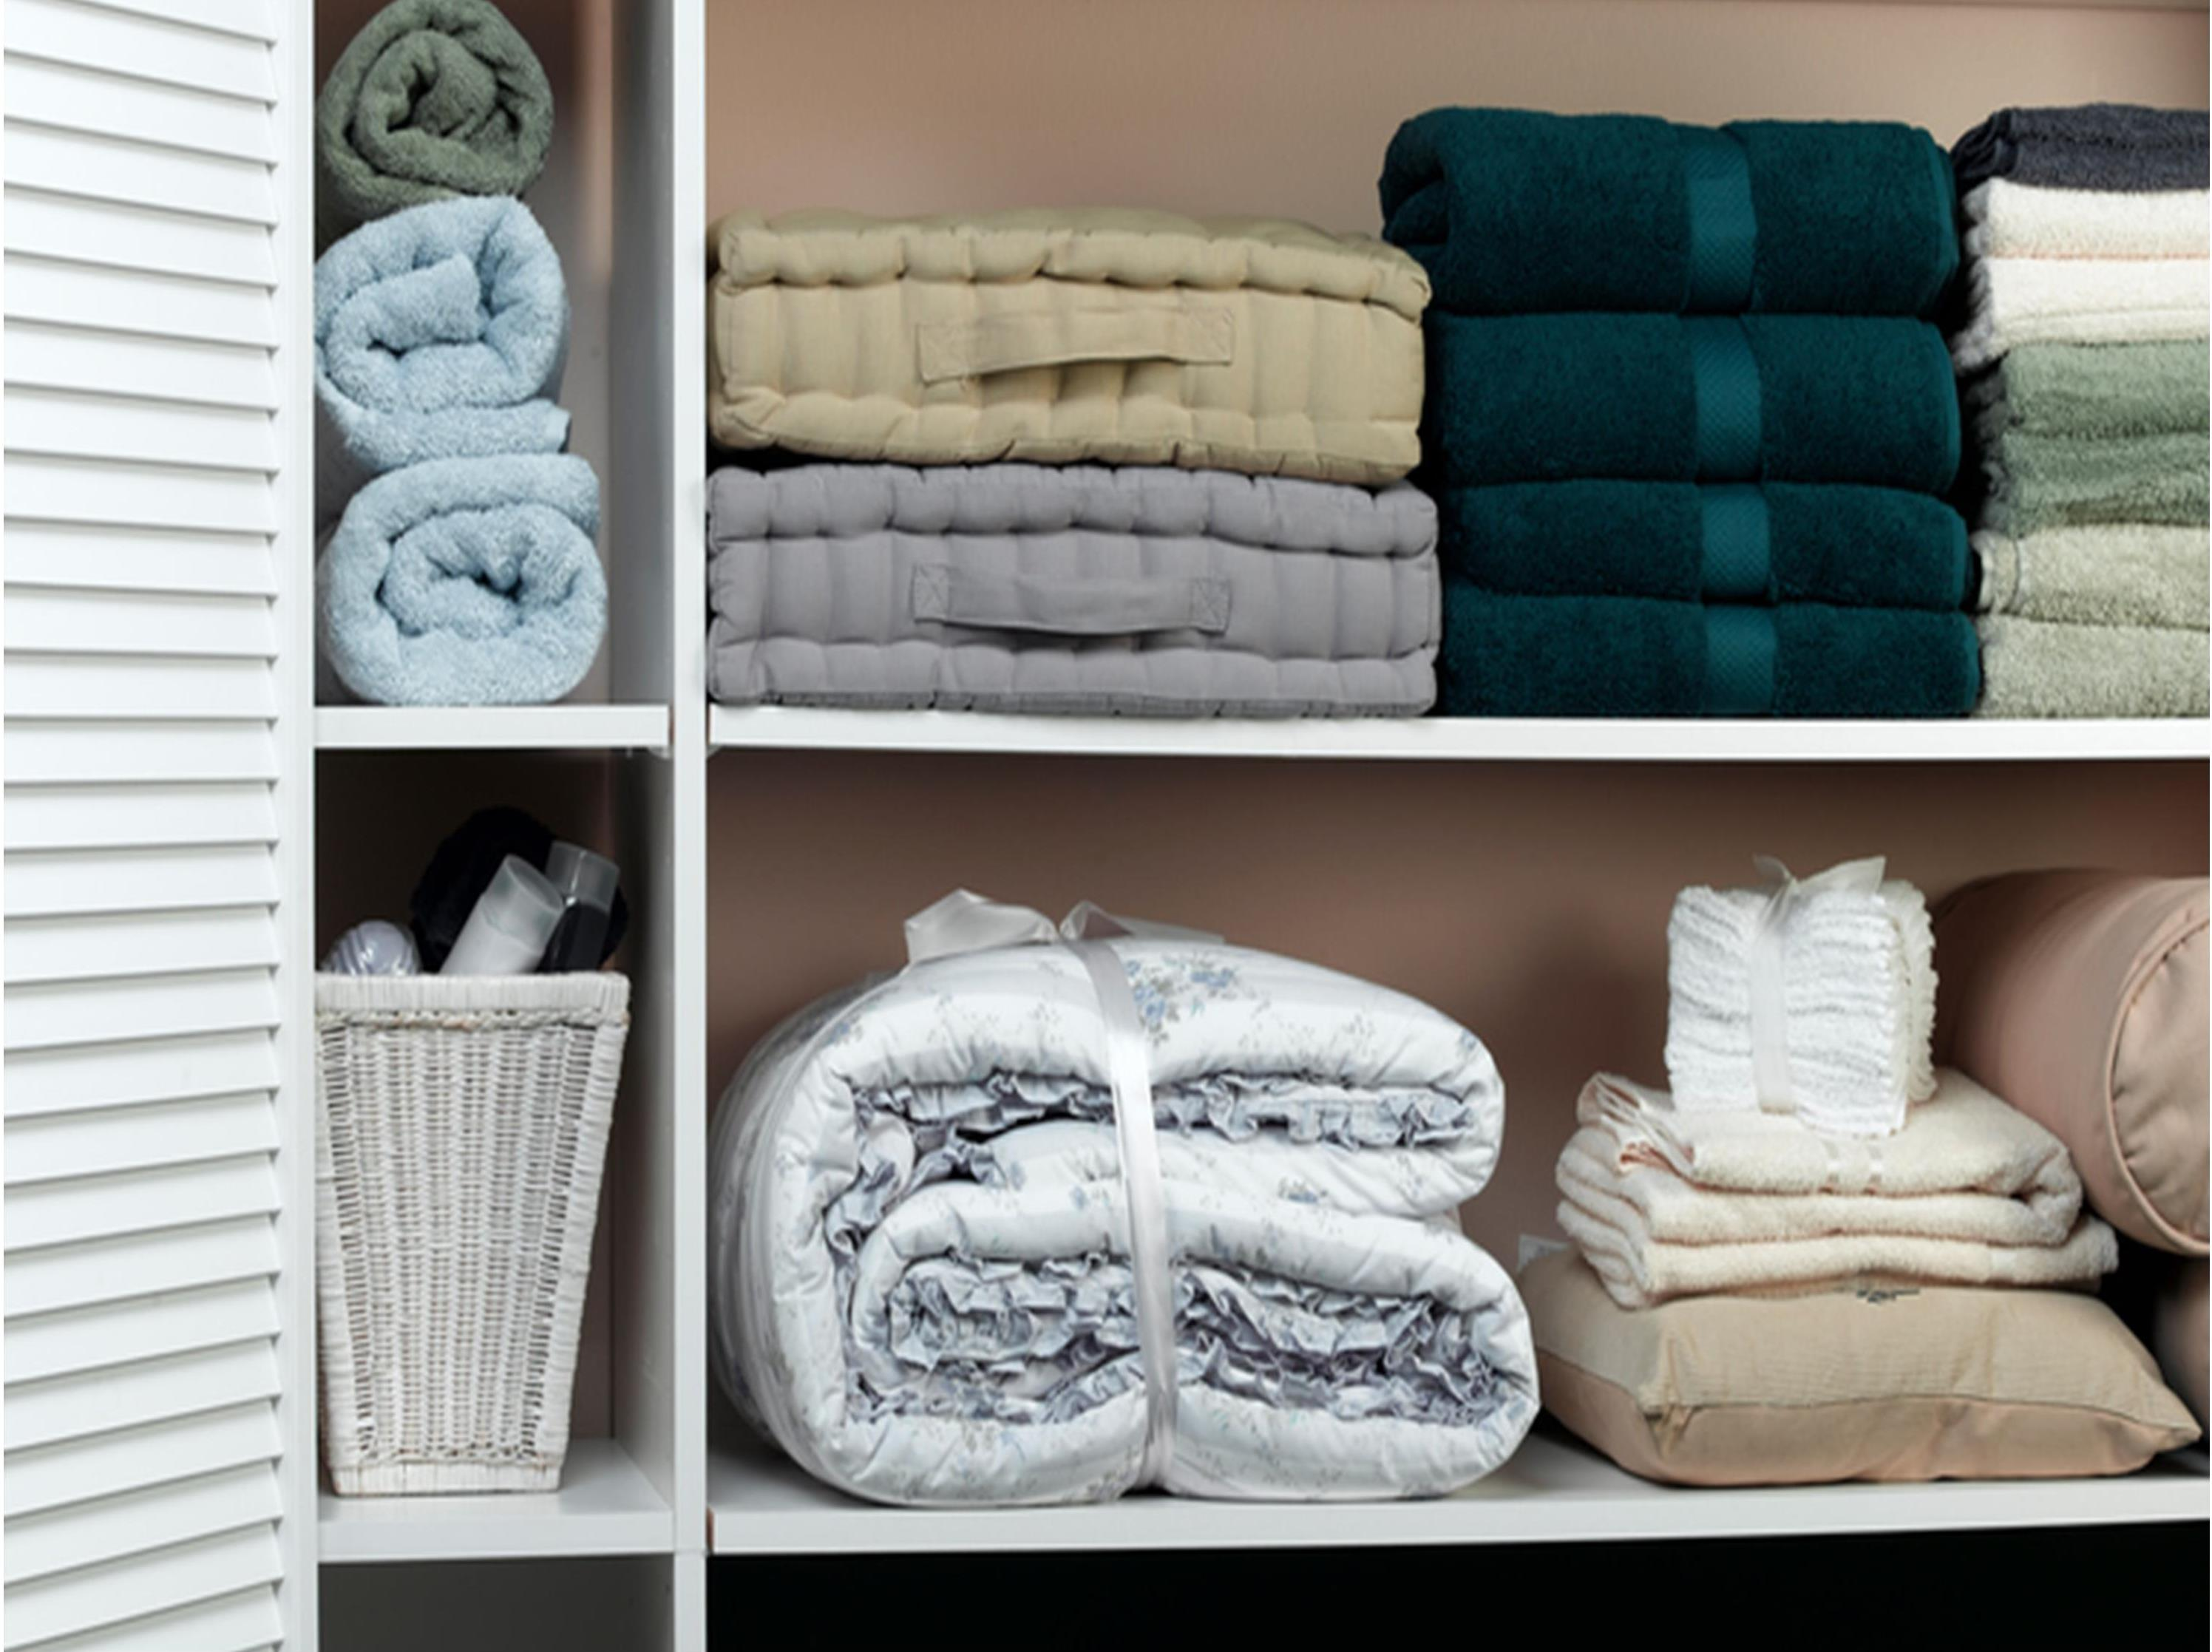 Organizing your Linen Closet . . .